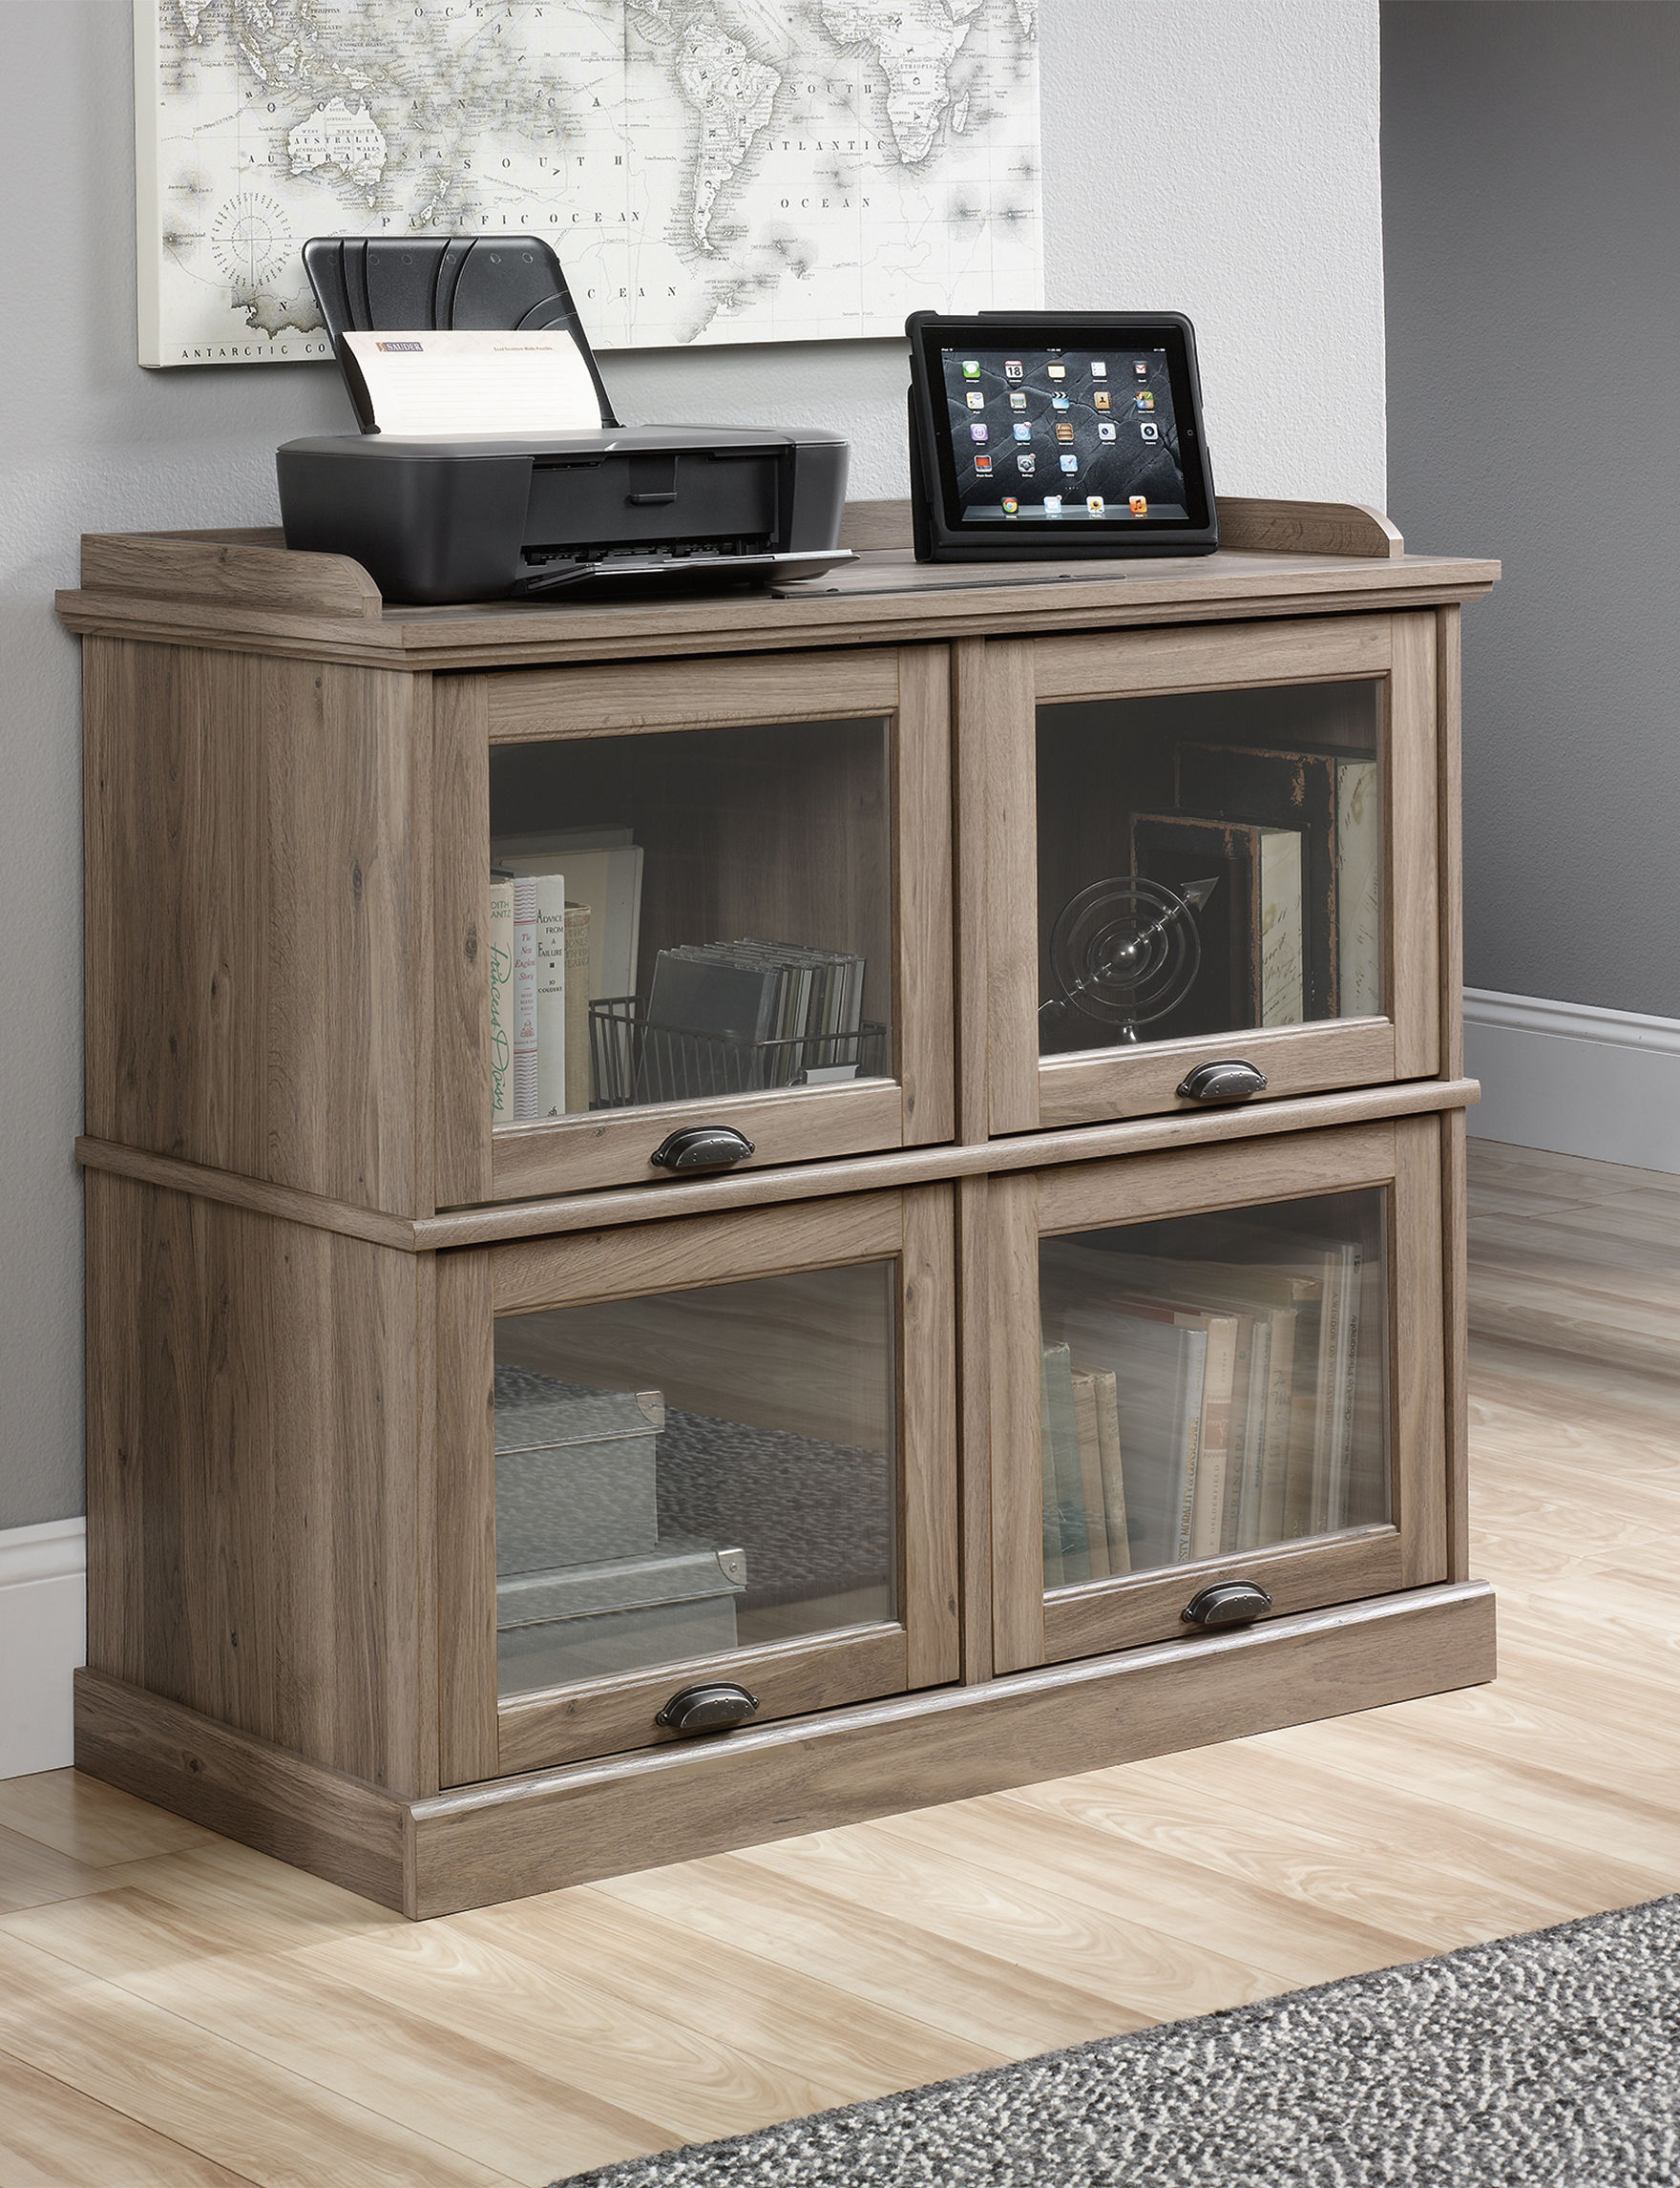 Sauder Beige TV Stands & Entertainment Centers Living Room Furniture